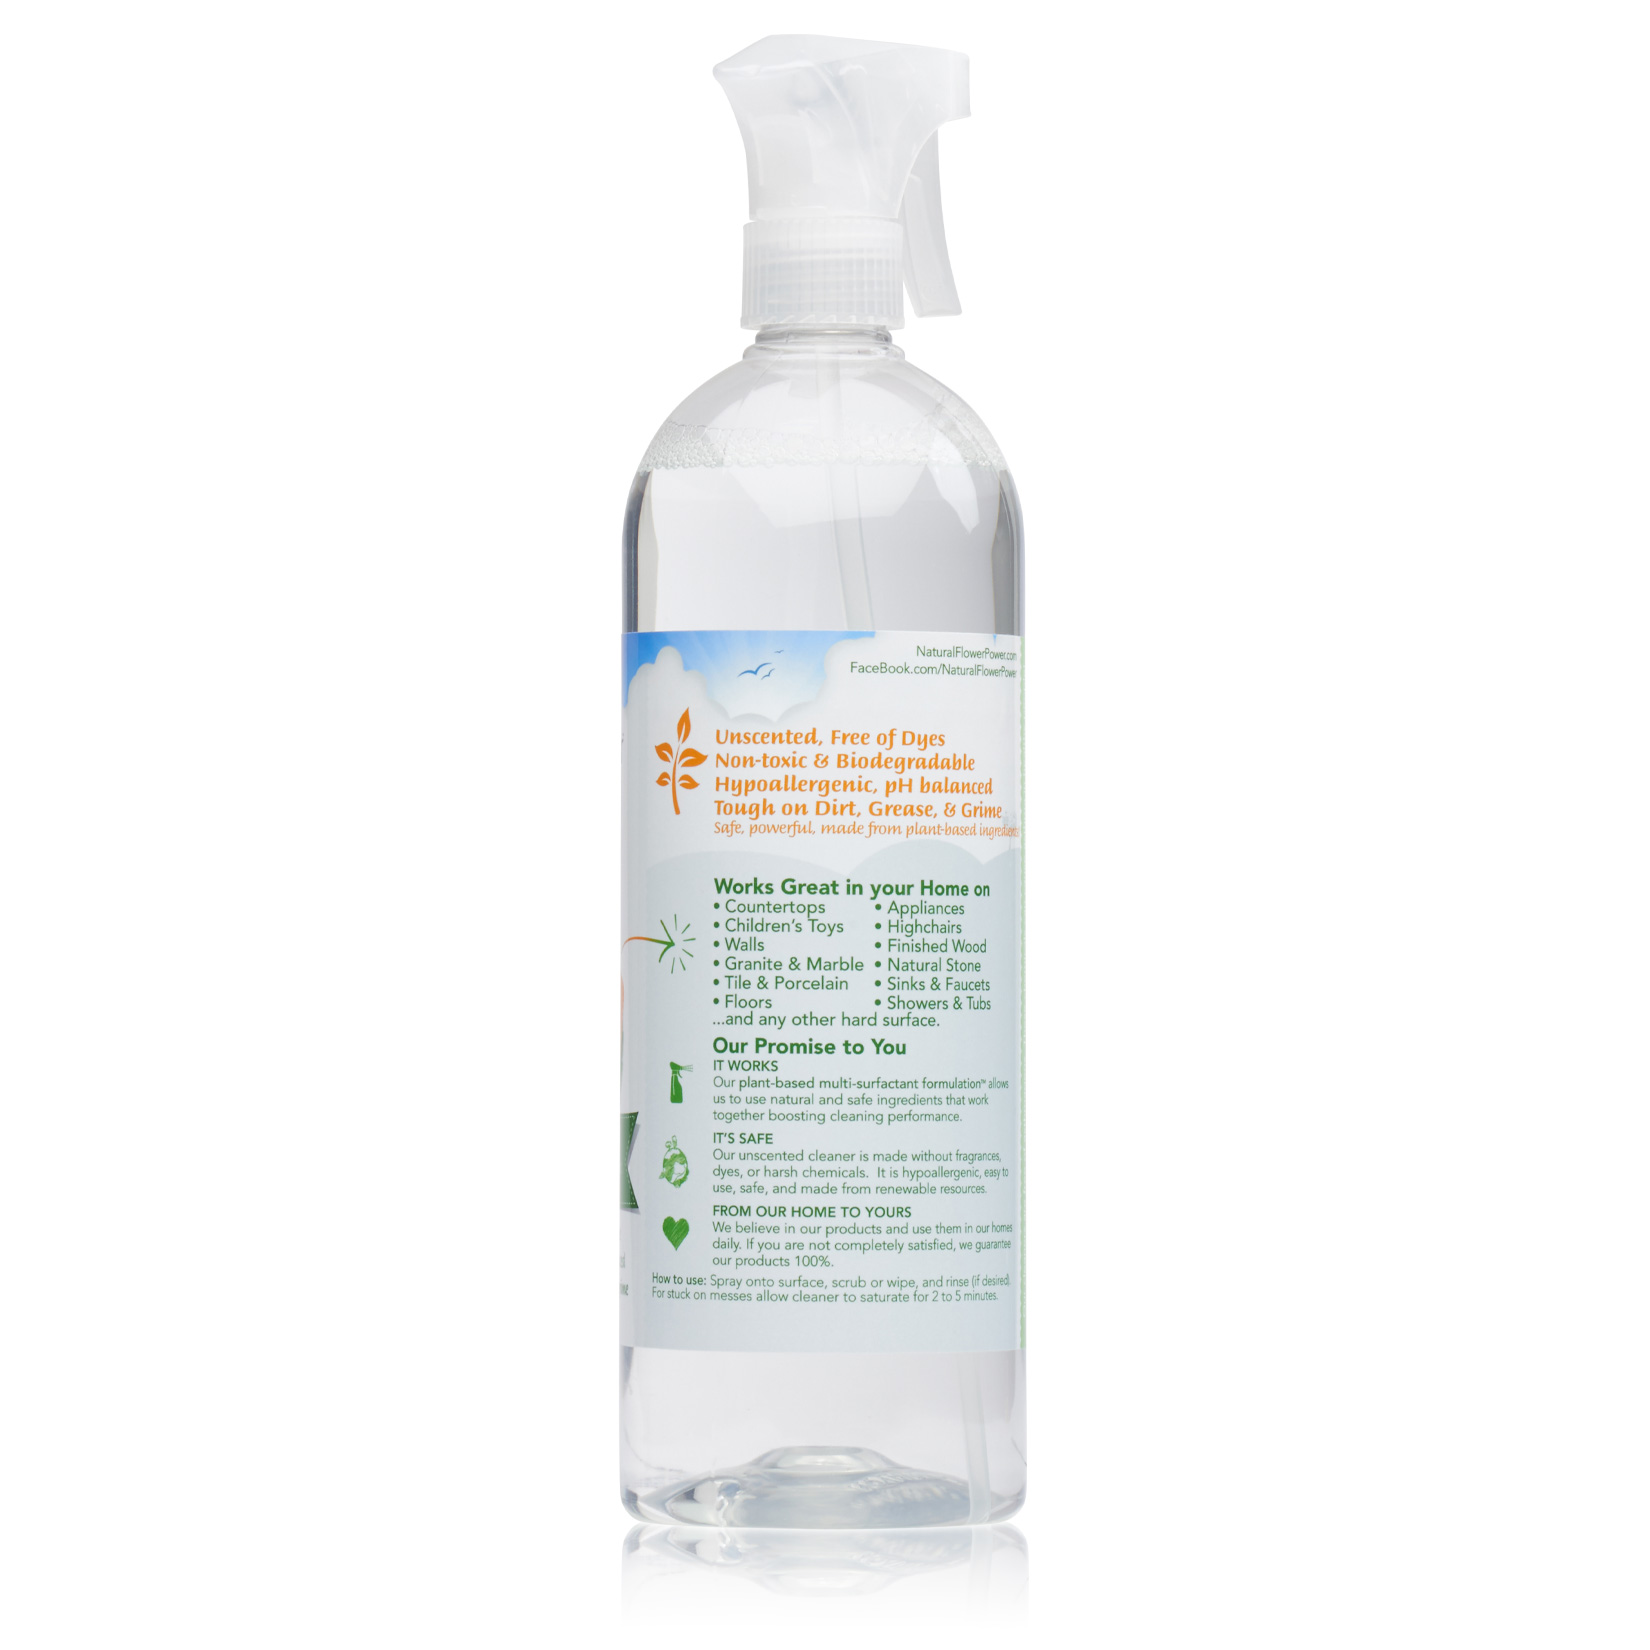 All-Purpose Cleaner Free & Clear – Back